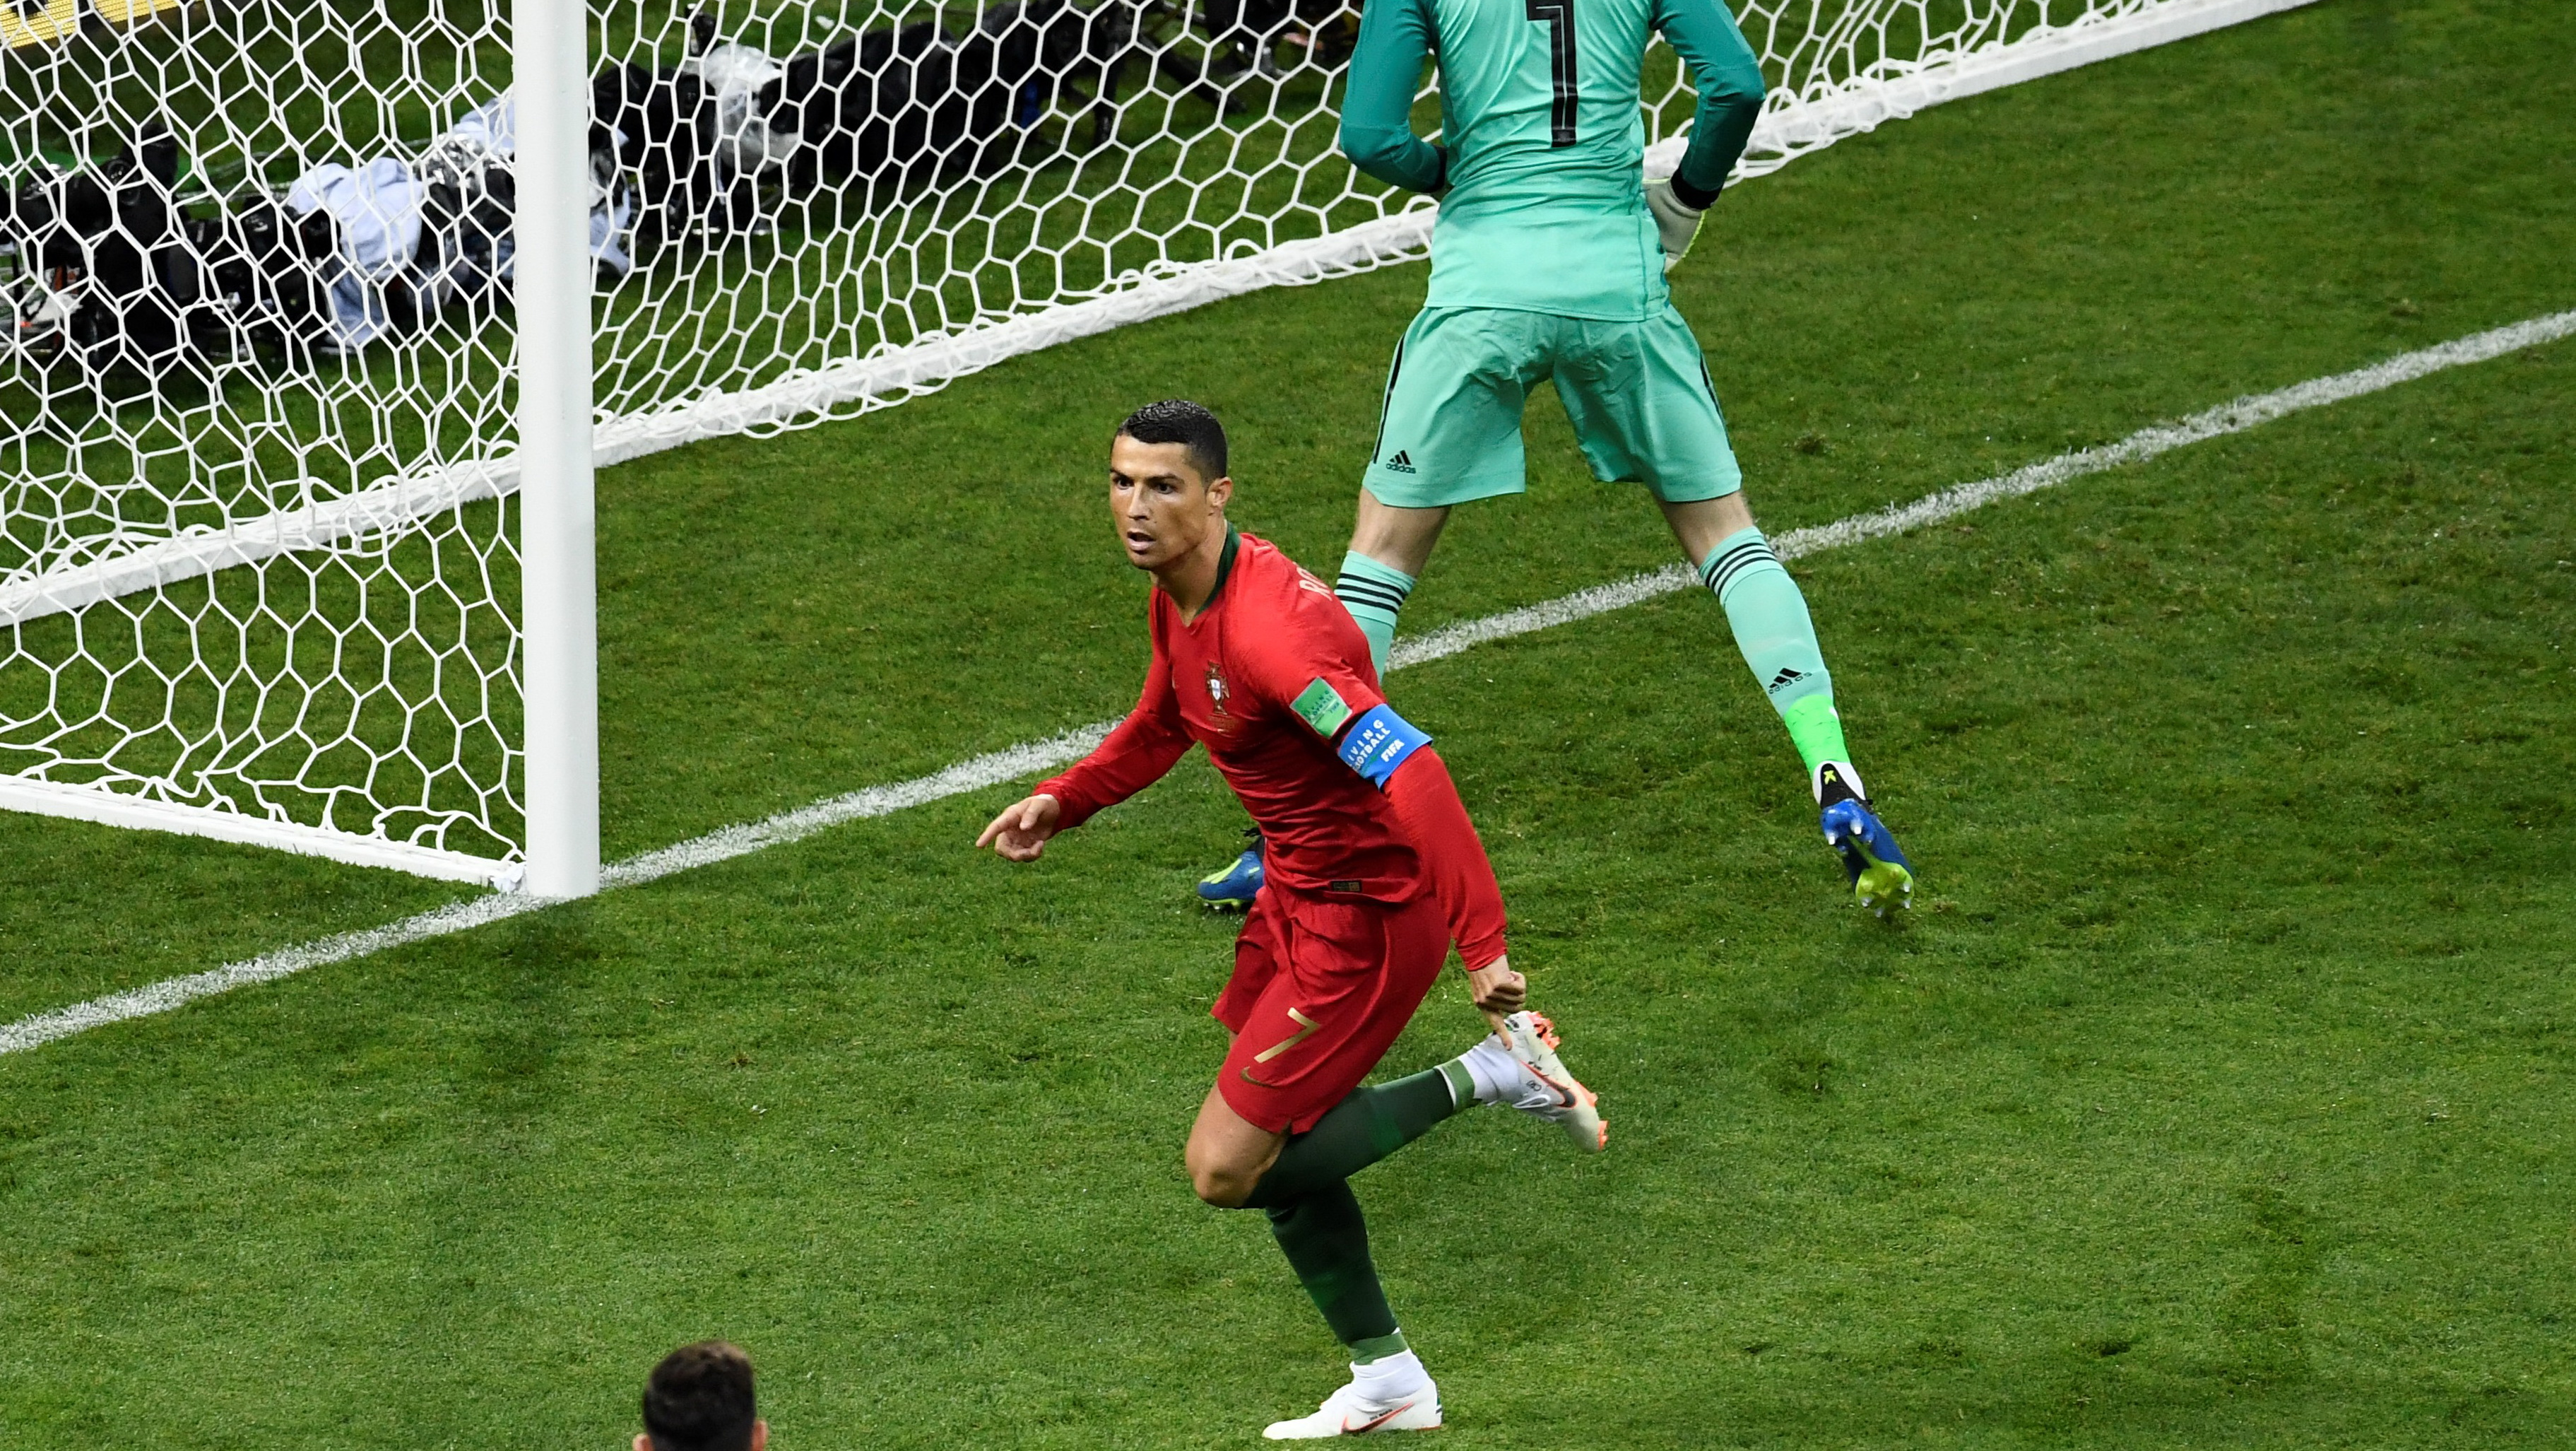 Cristiano Ronaldo Portugal Spain World Cup 2018